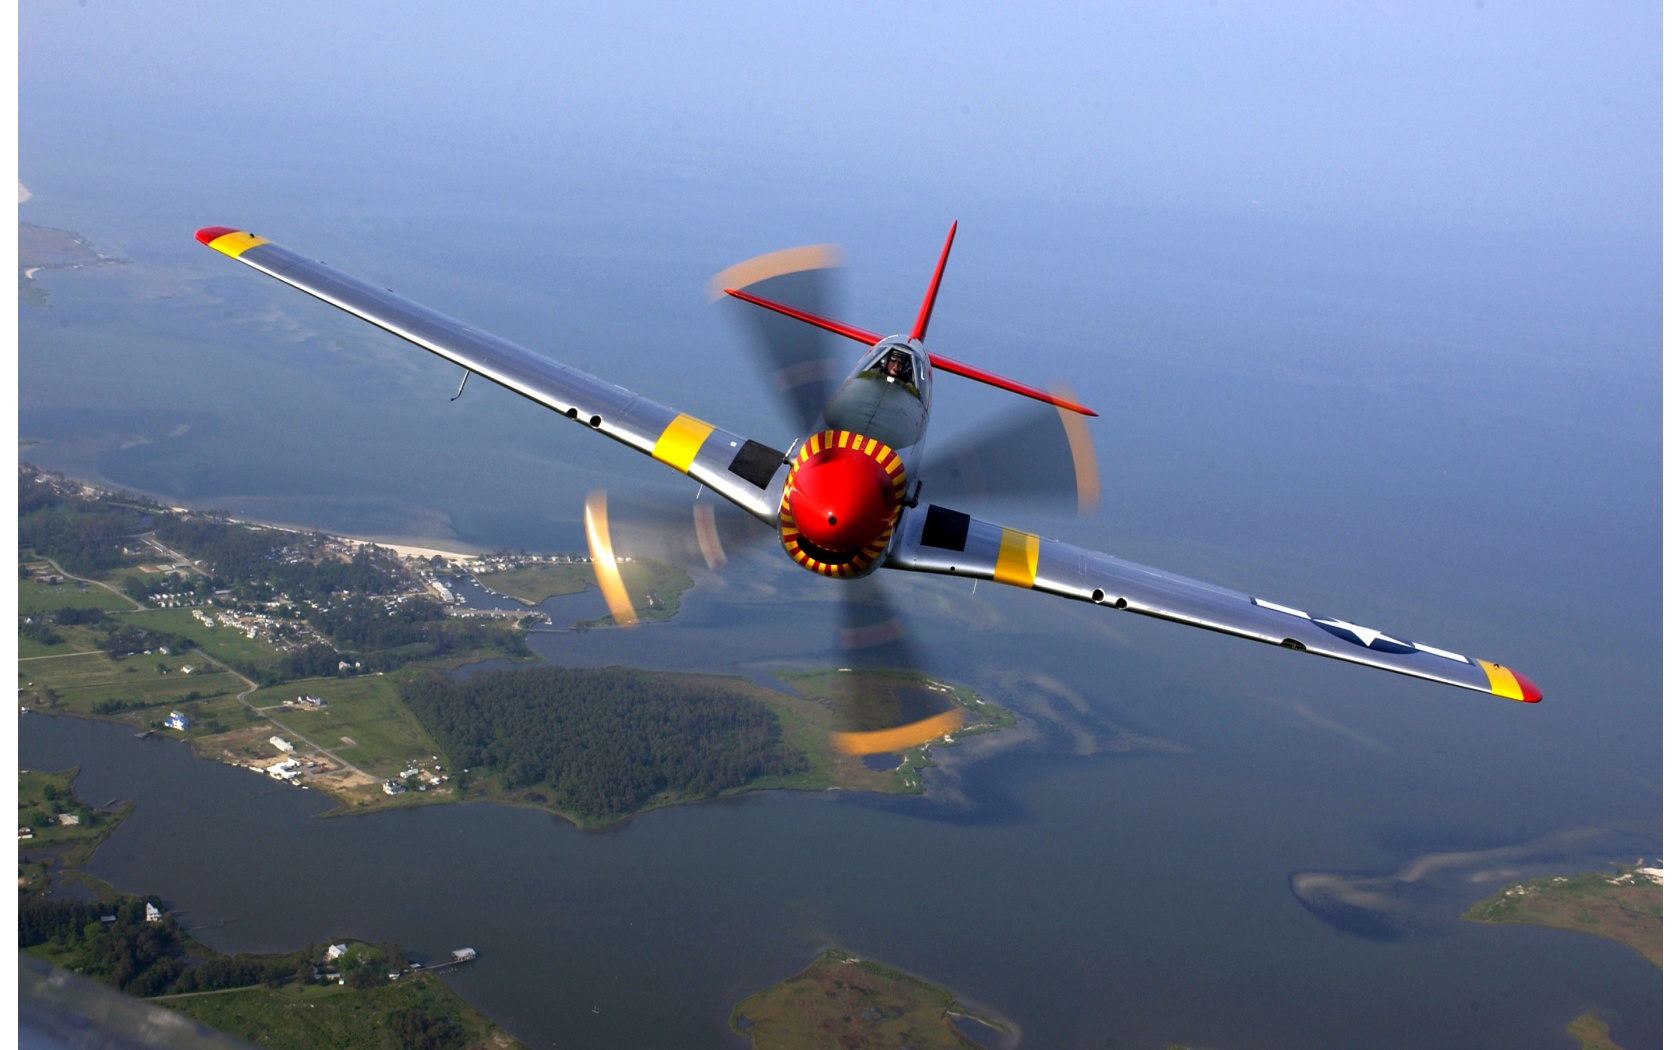 P 51 Mustang Wallpapers 1680x1050 416522